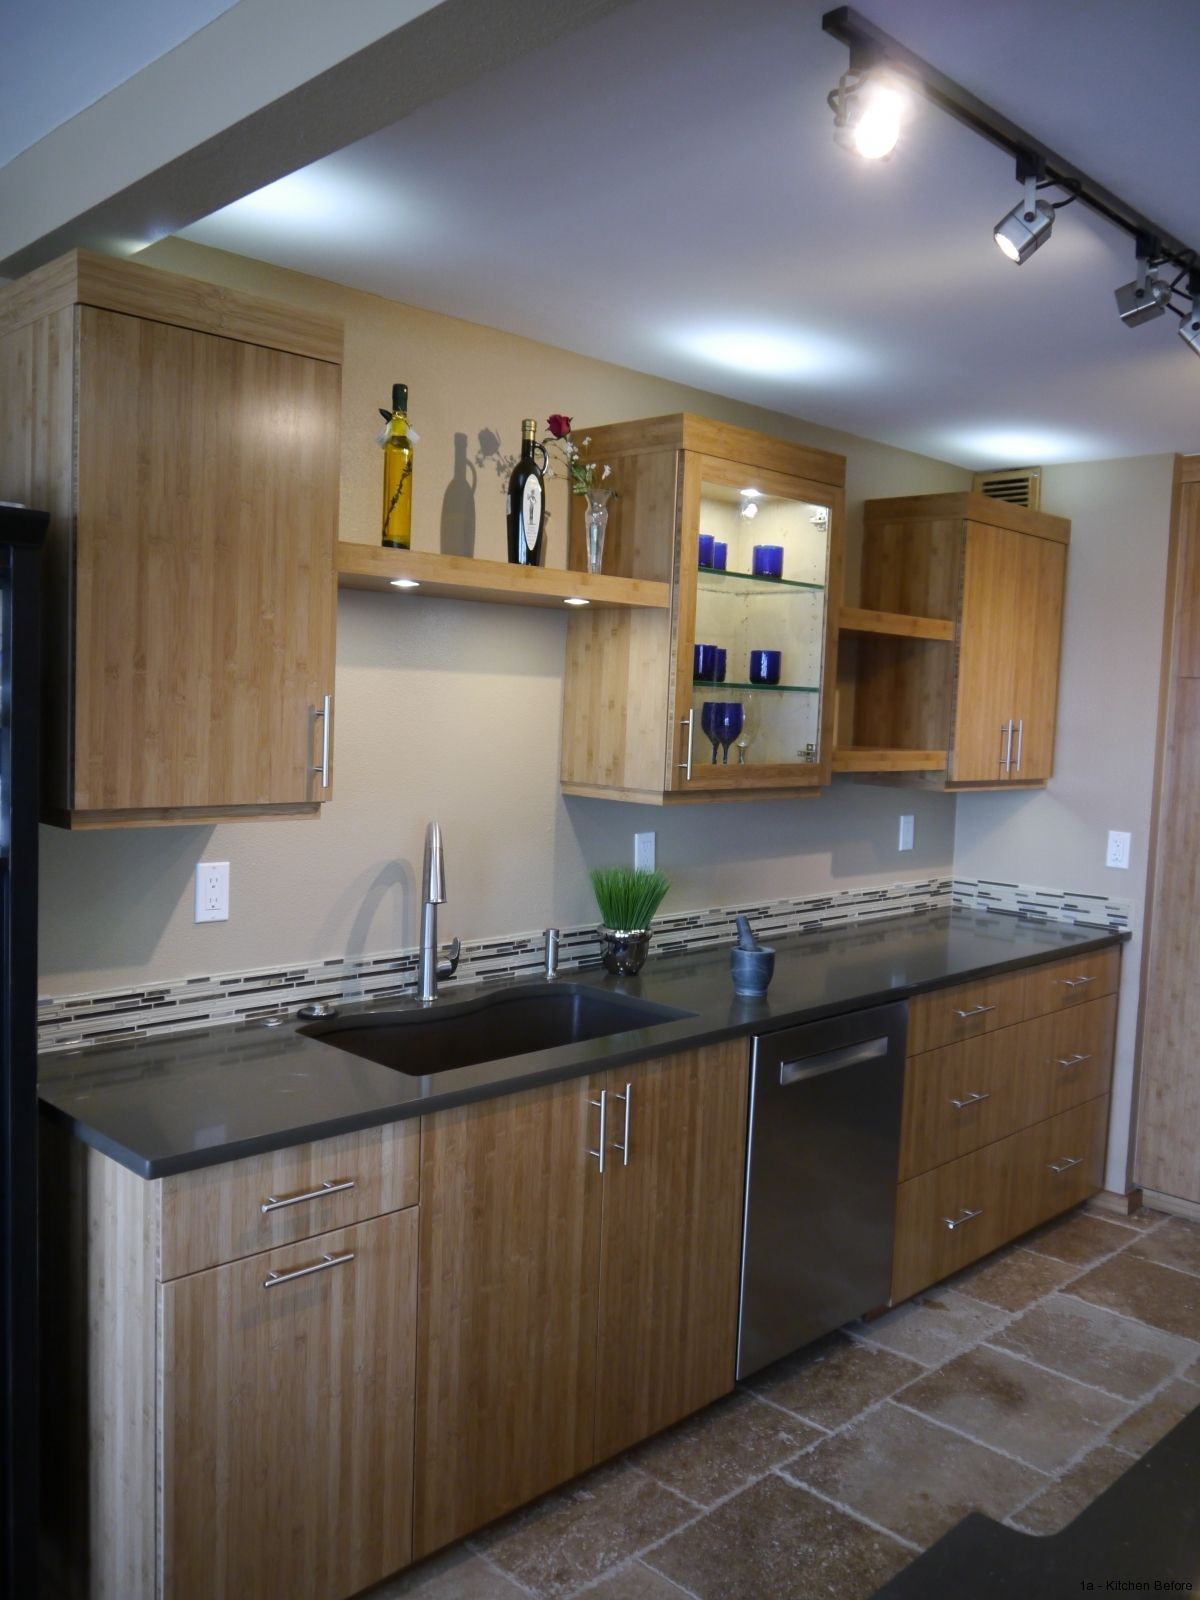 Kitchen Cabinets Cost Remodel Gorgeous Average Cabinet Refacing Amazing Kitchen Cabinet Cost Review